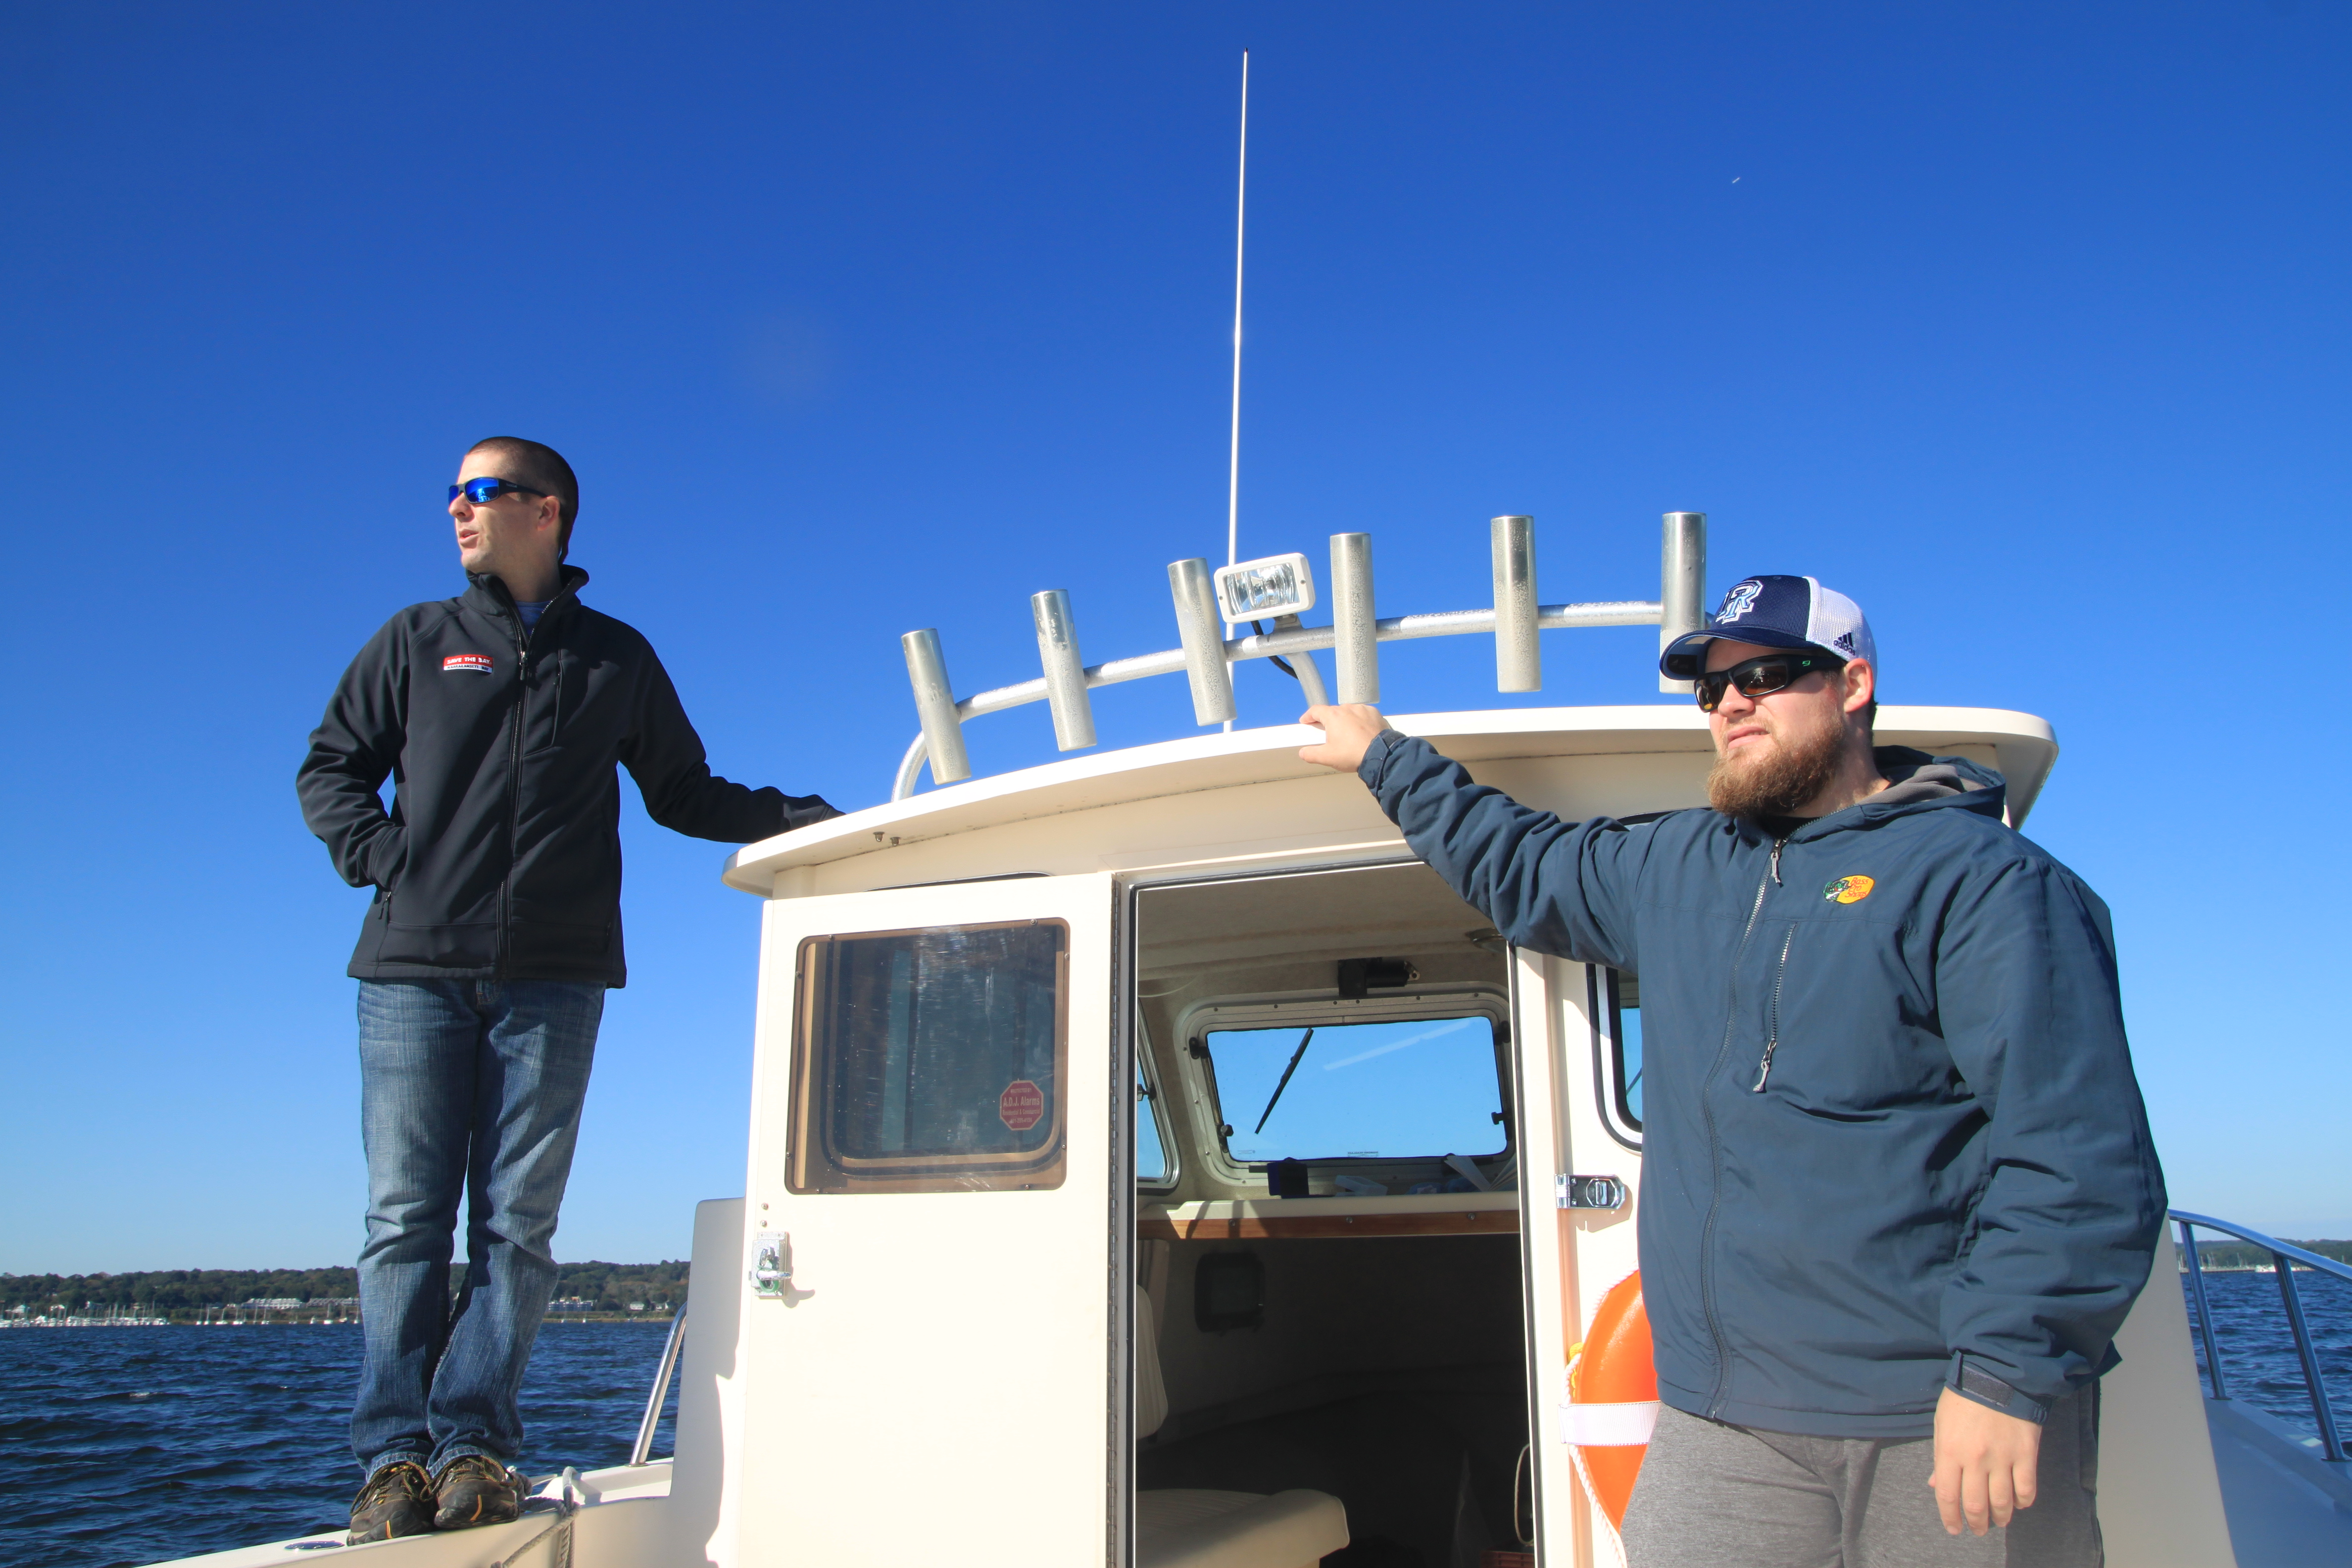 Baykeeper Mike Jarbeau and intern aboard Seaverge